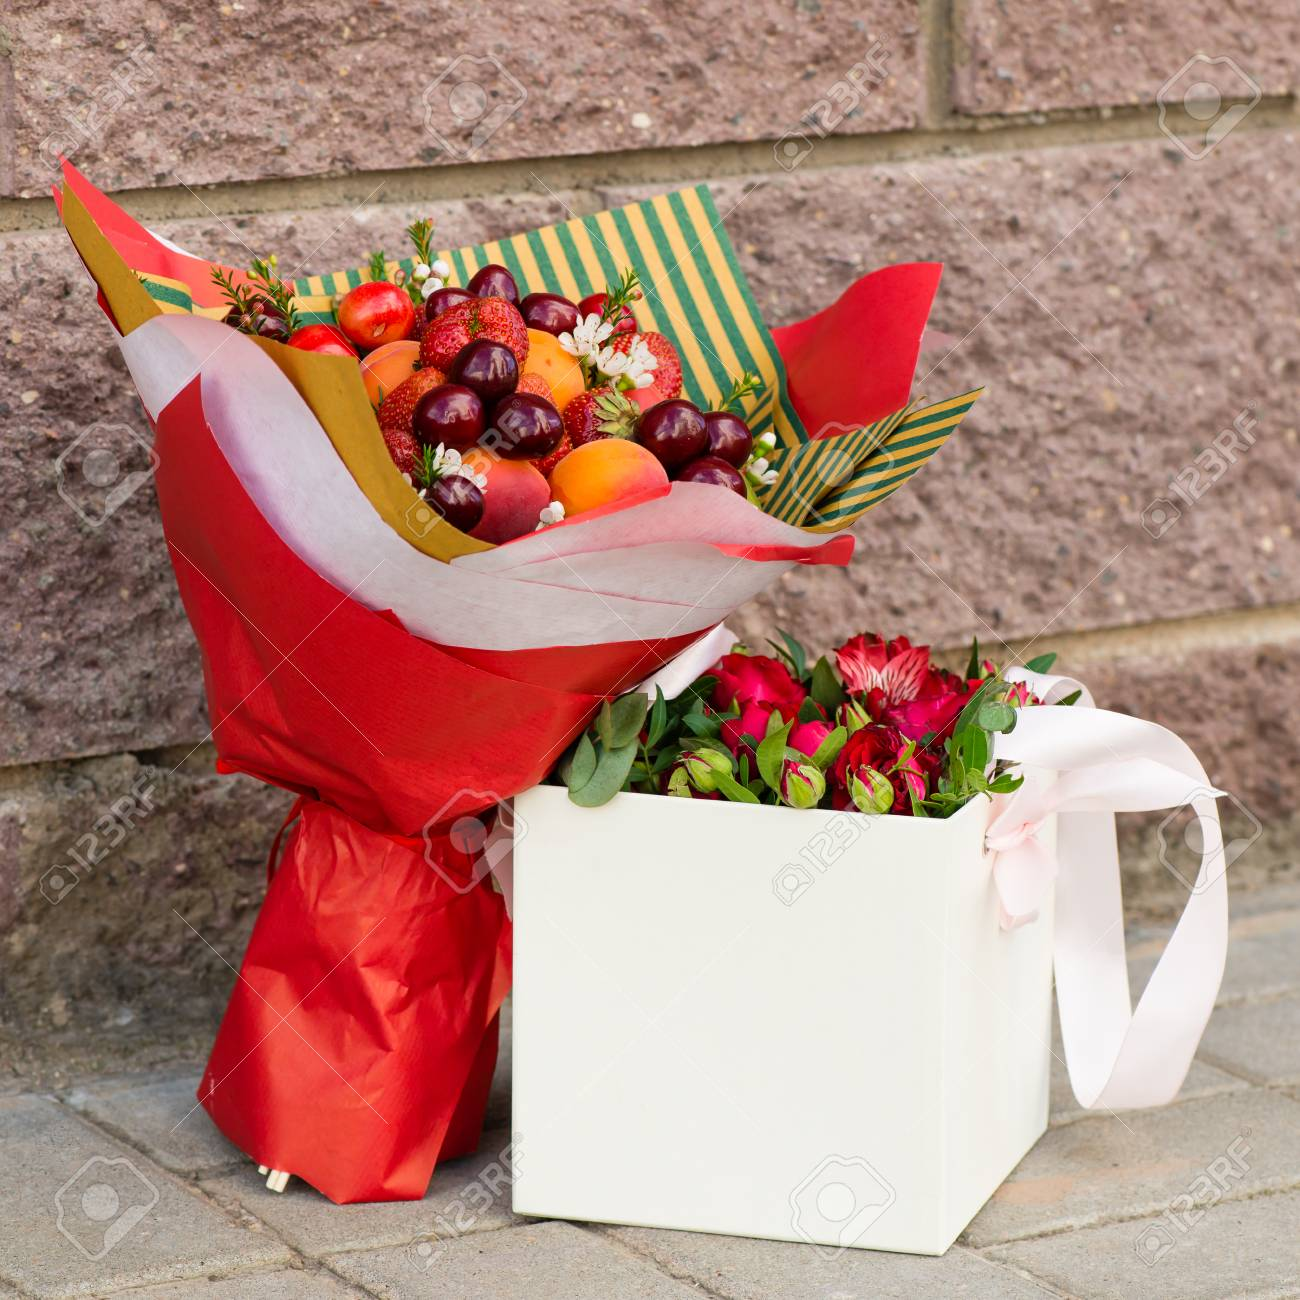 Fruit bouquet and box with flowers stock photo picture and royalty fruit bouquet and box with flowers stock photo 104522335 izmirmasajfo